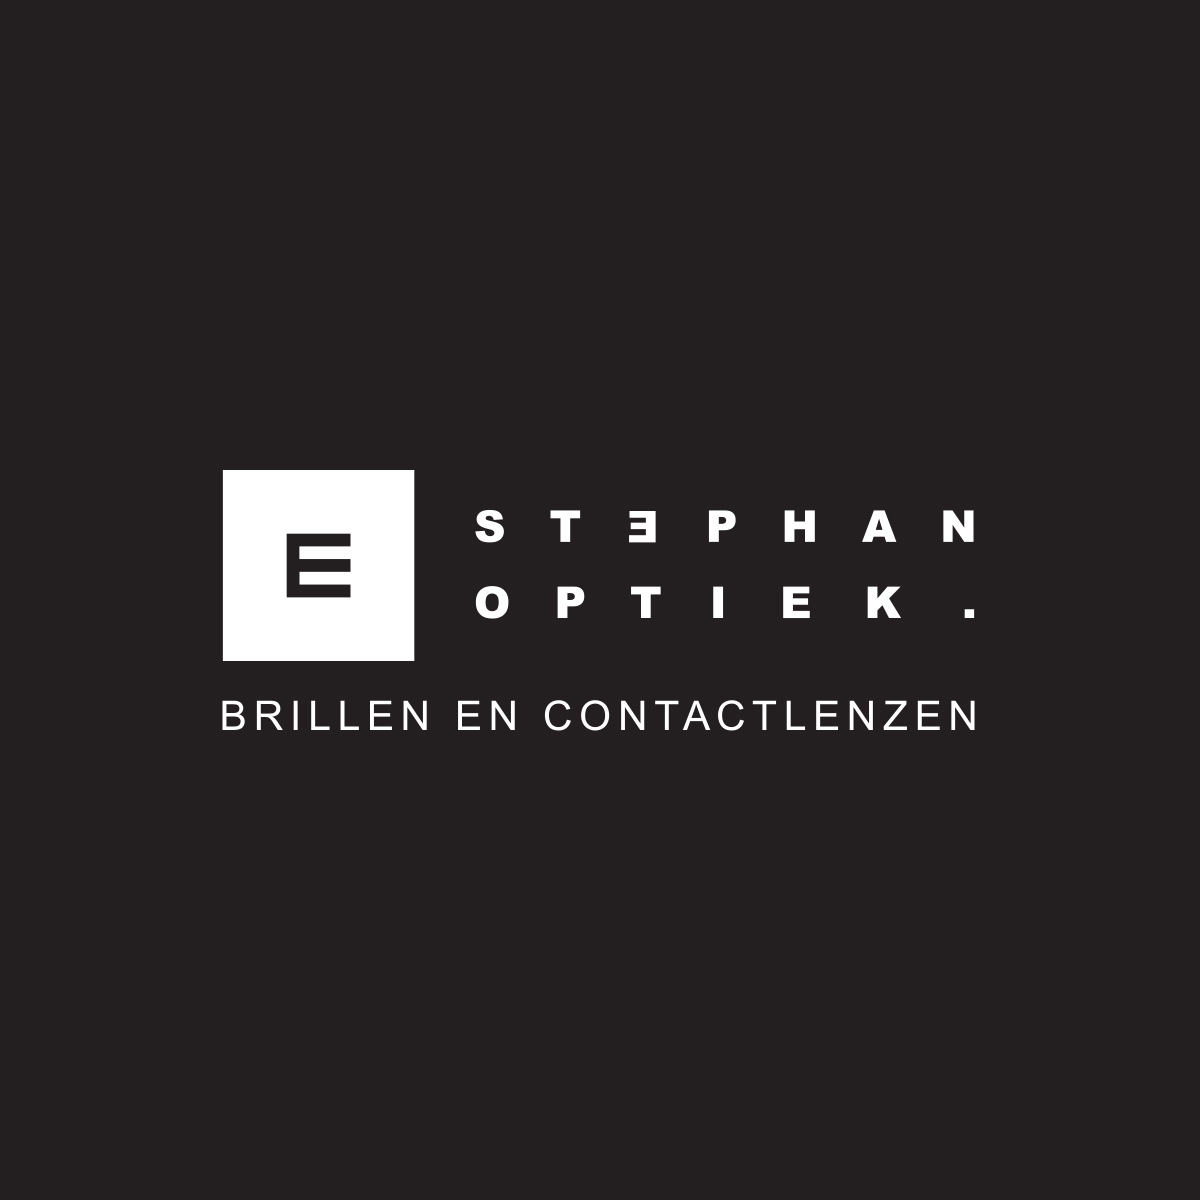 Stephan Optiek